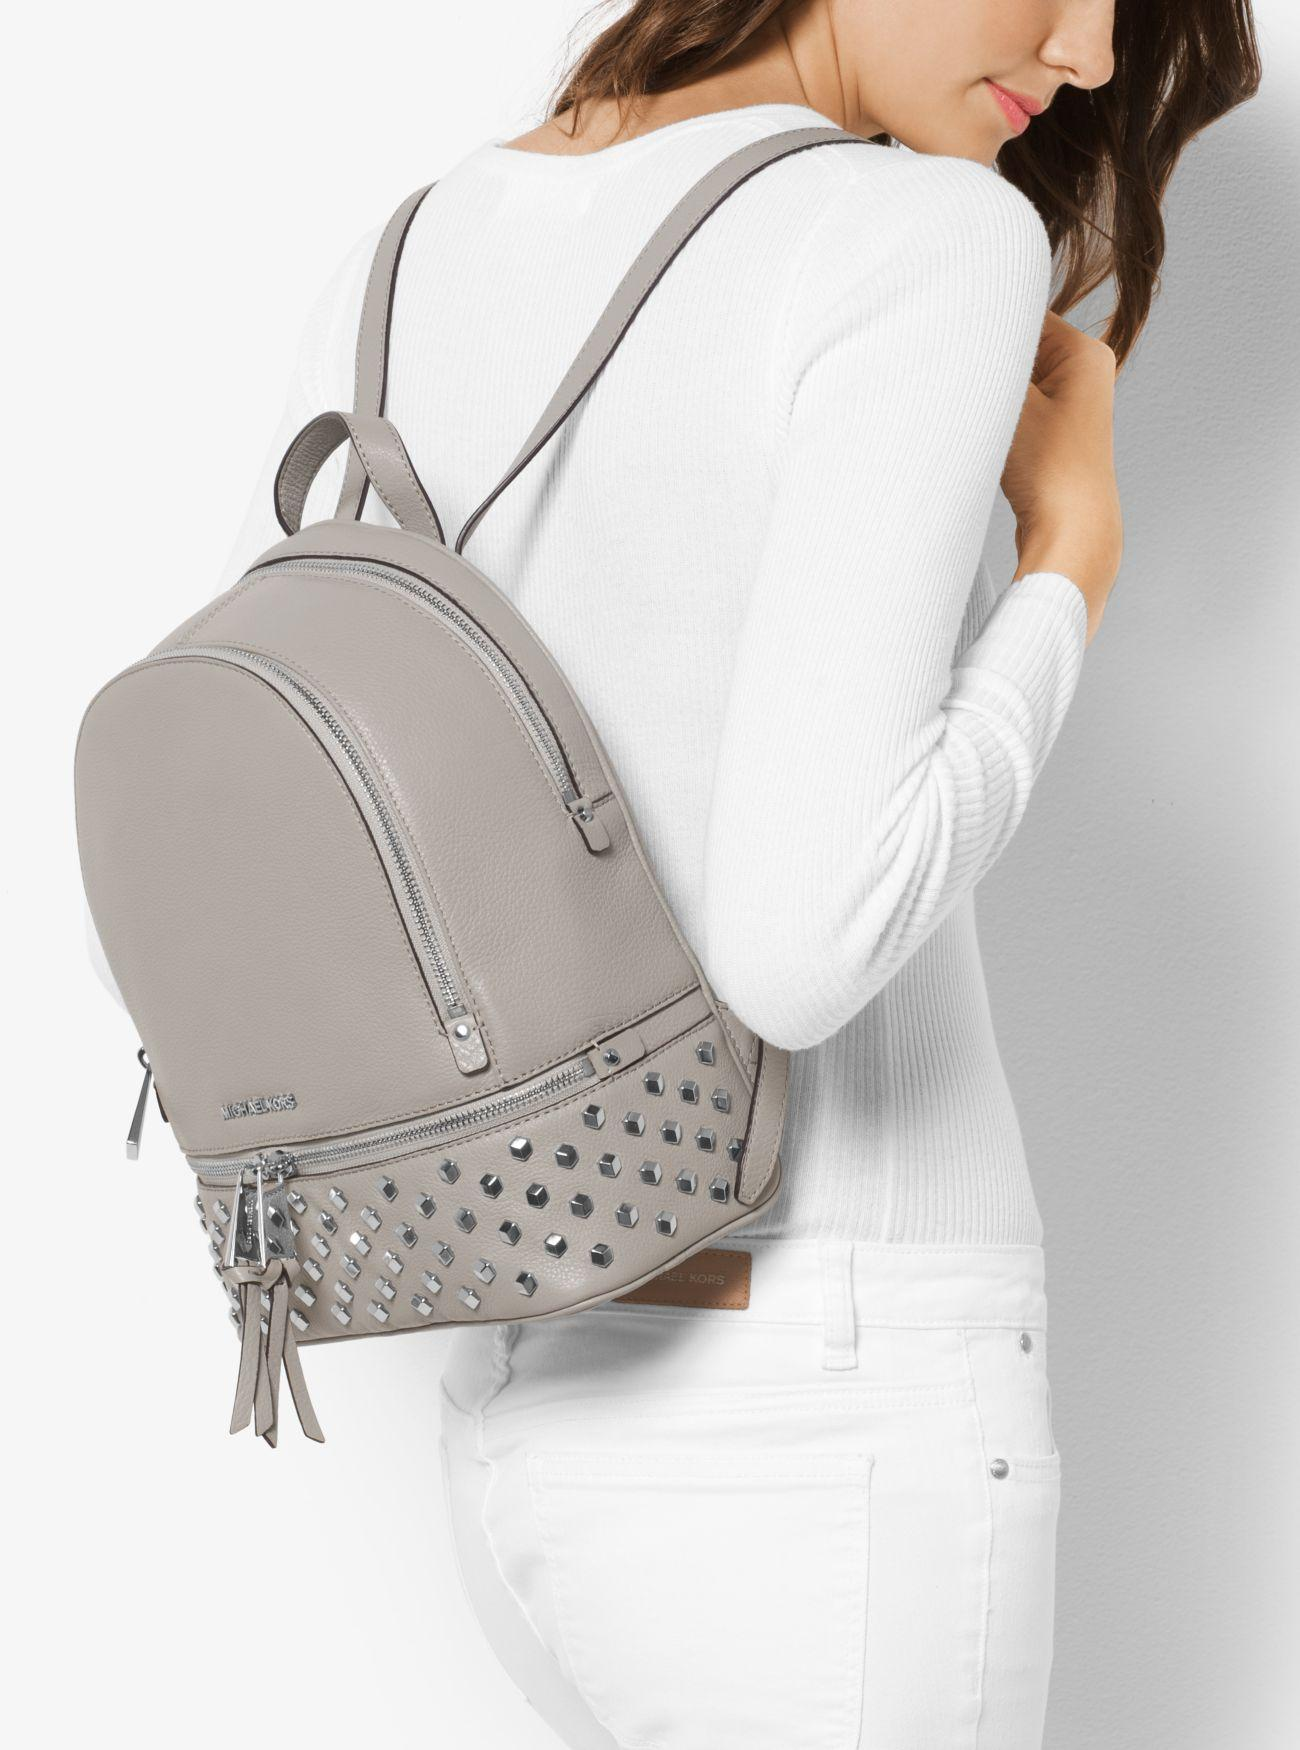 27d2ae27f48f8 Lyst - Michael Kors Rhea Medium Studded Leather Backpack in Gray